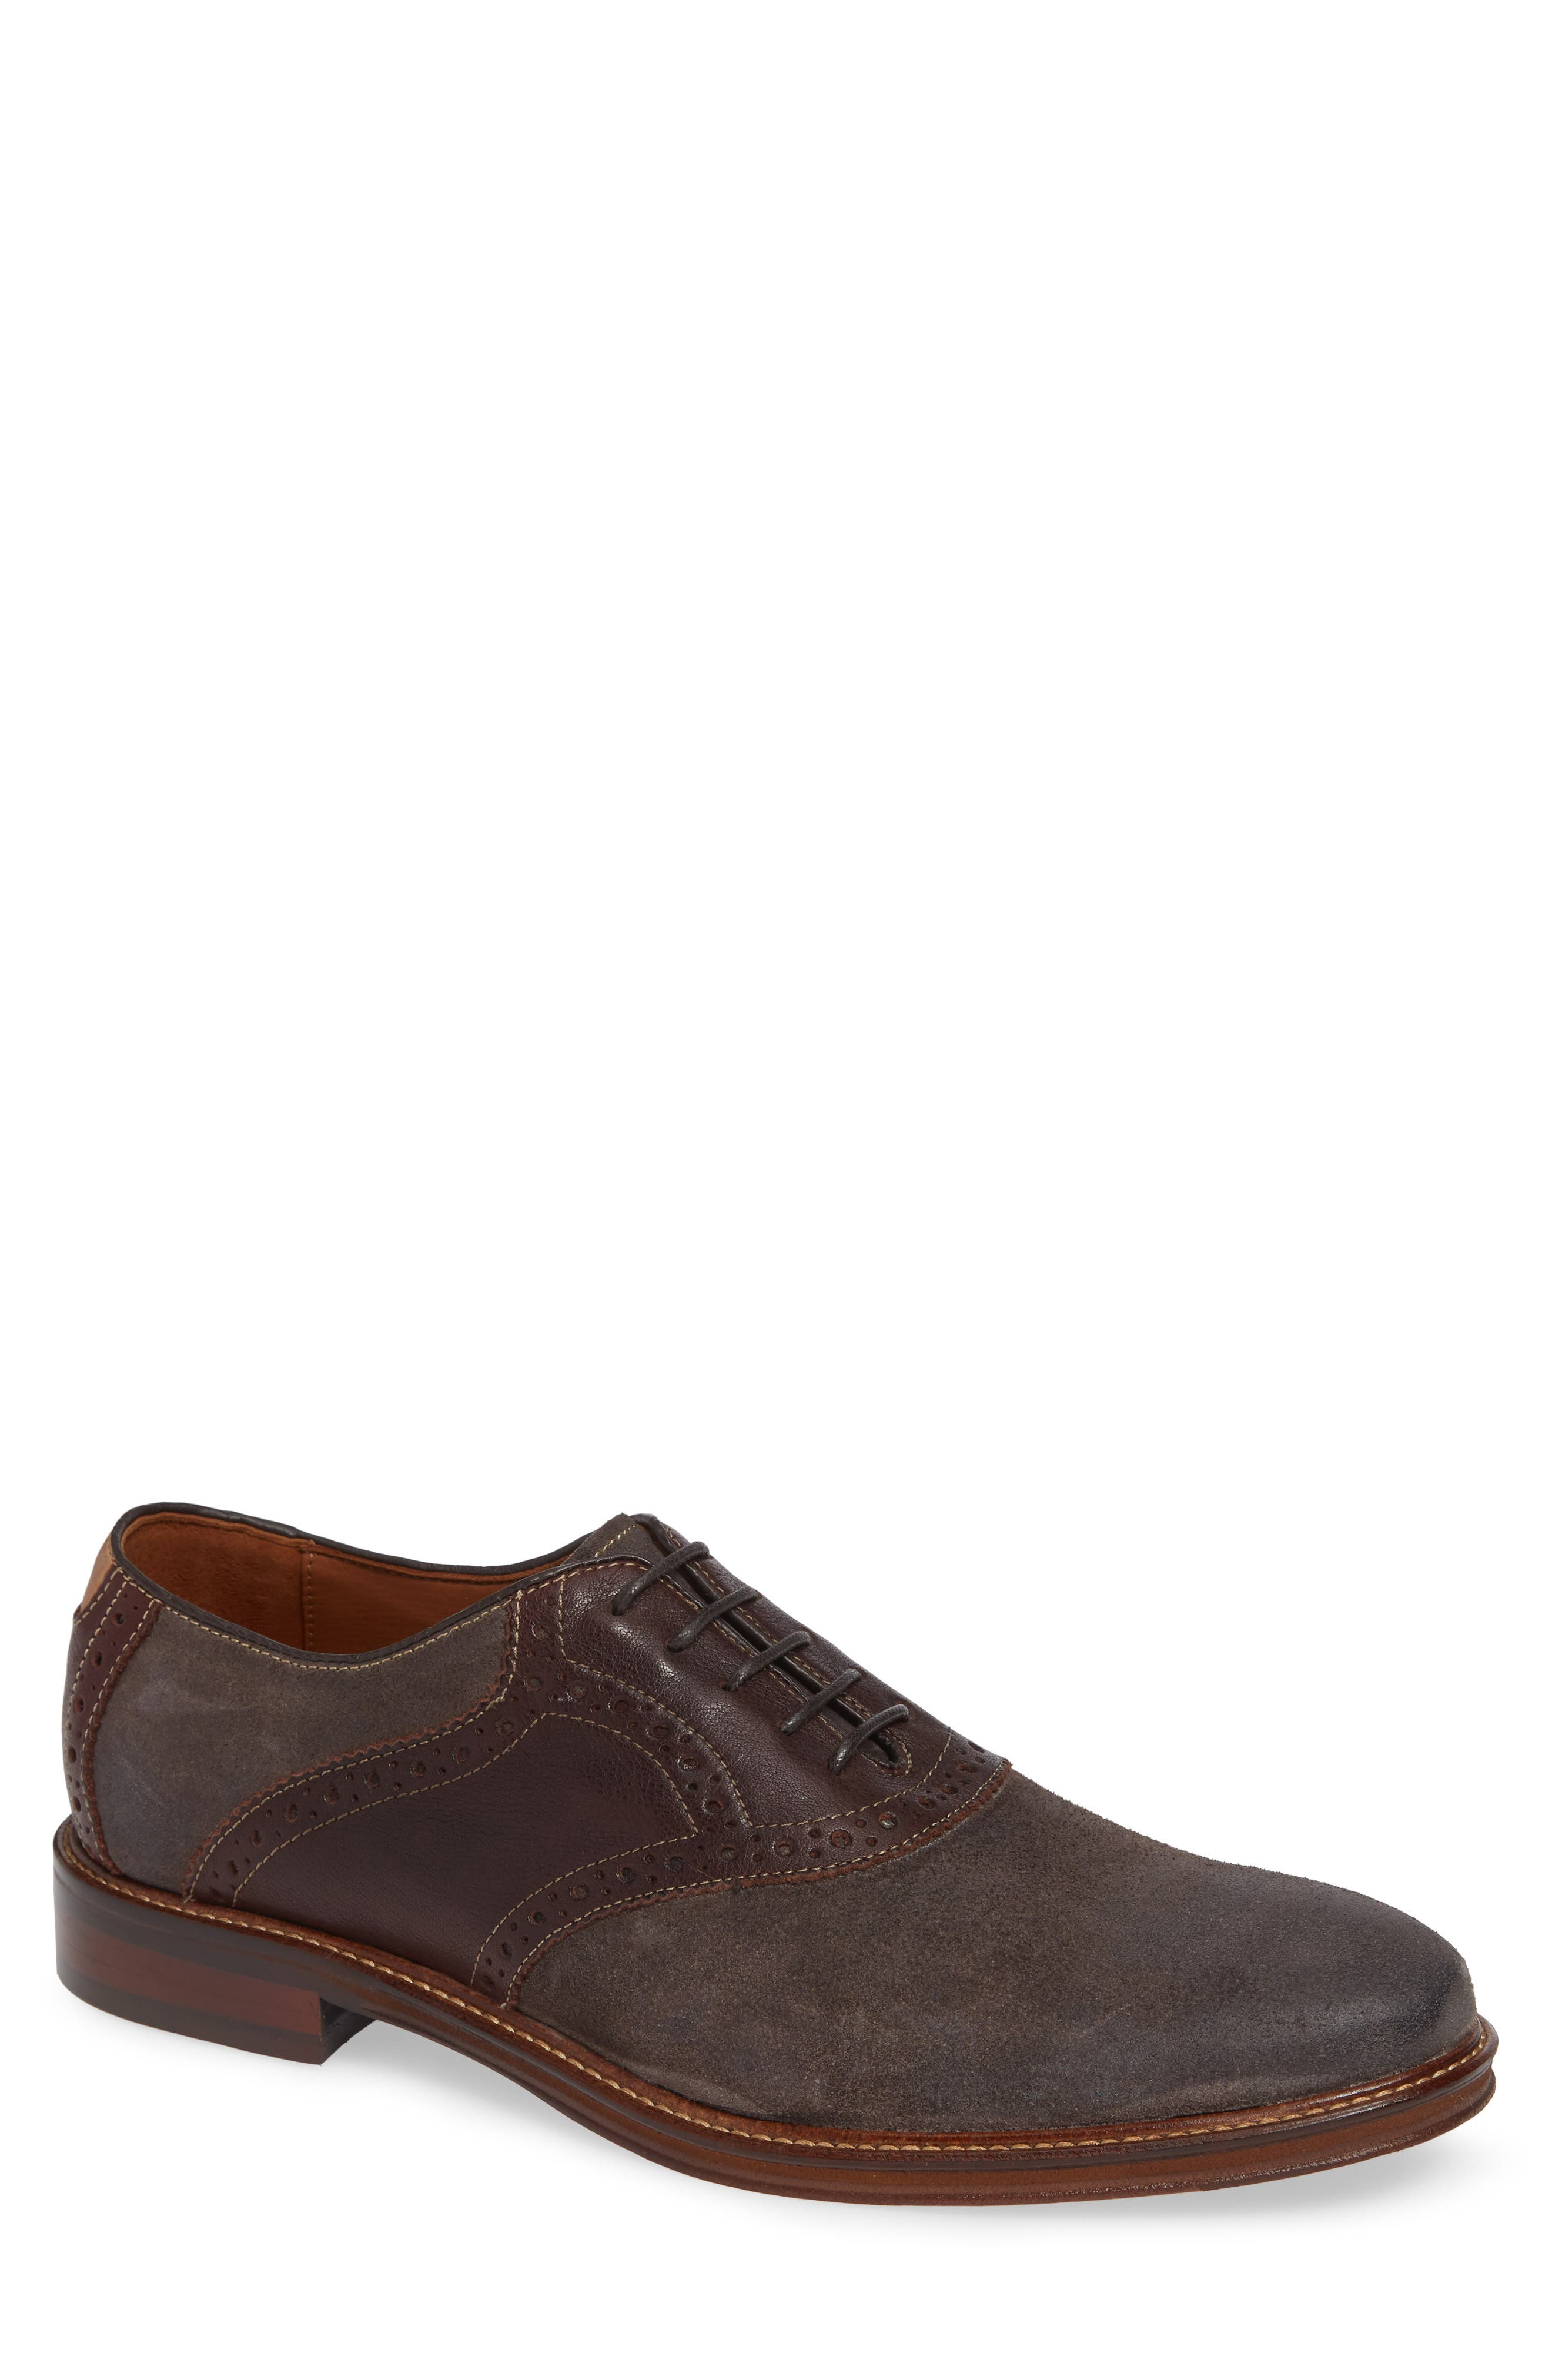 Warner Saddle Shoe,                         Main,                         color, Dark Grey Suede